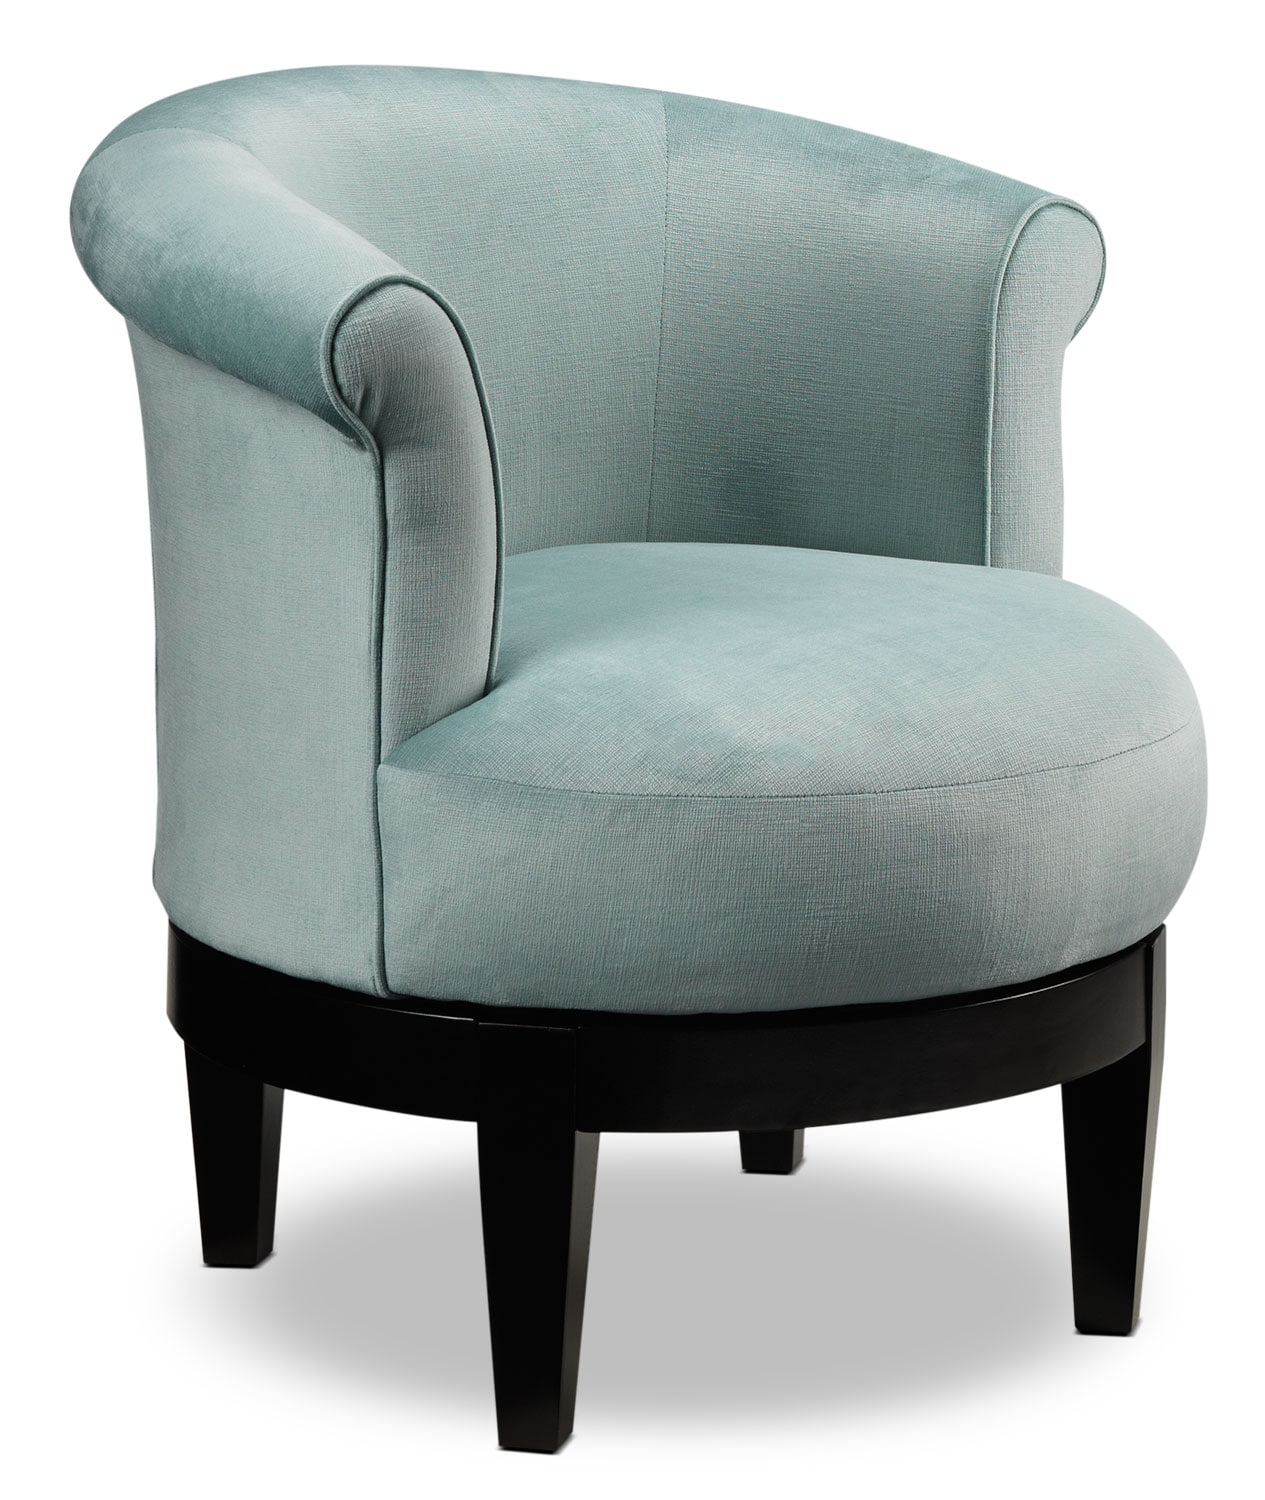 Attica Swivel Accent Chair - Aqua